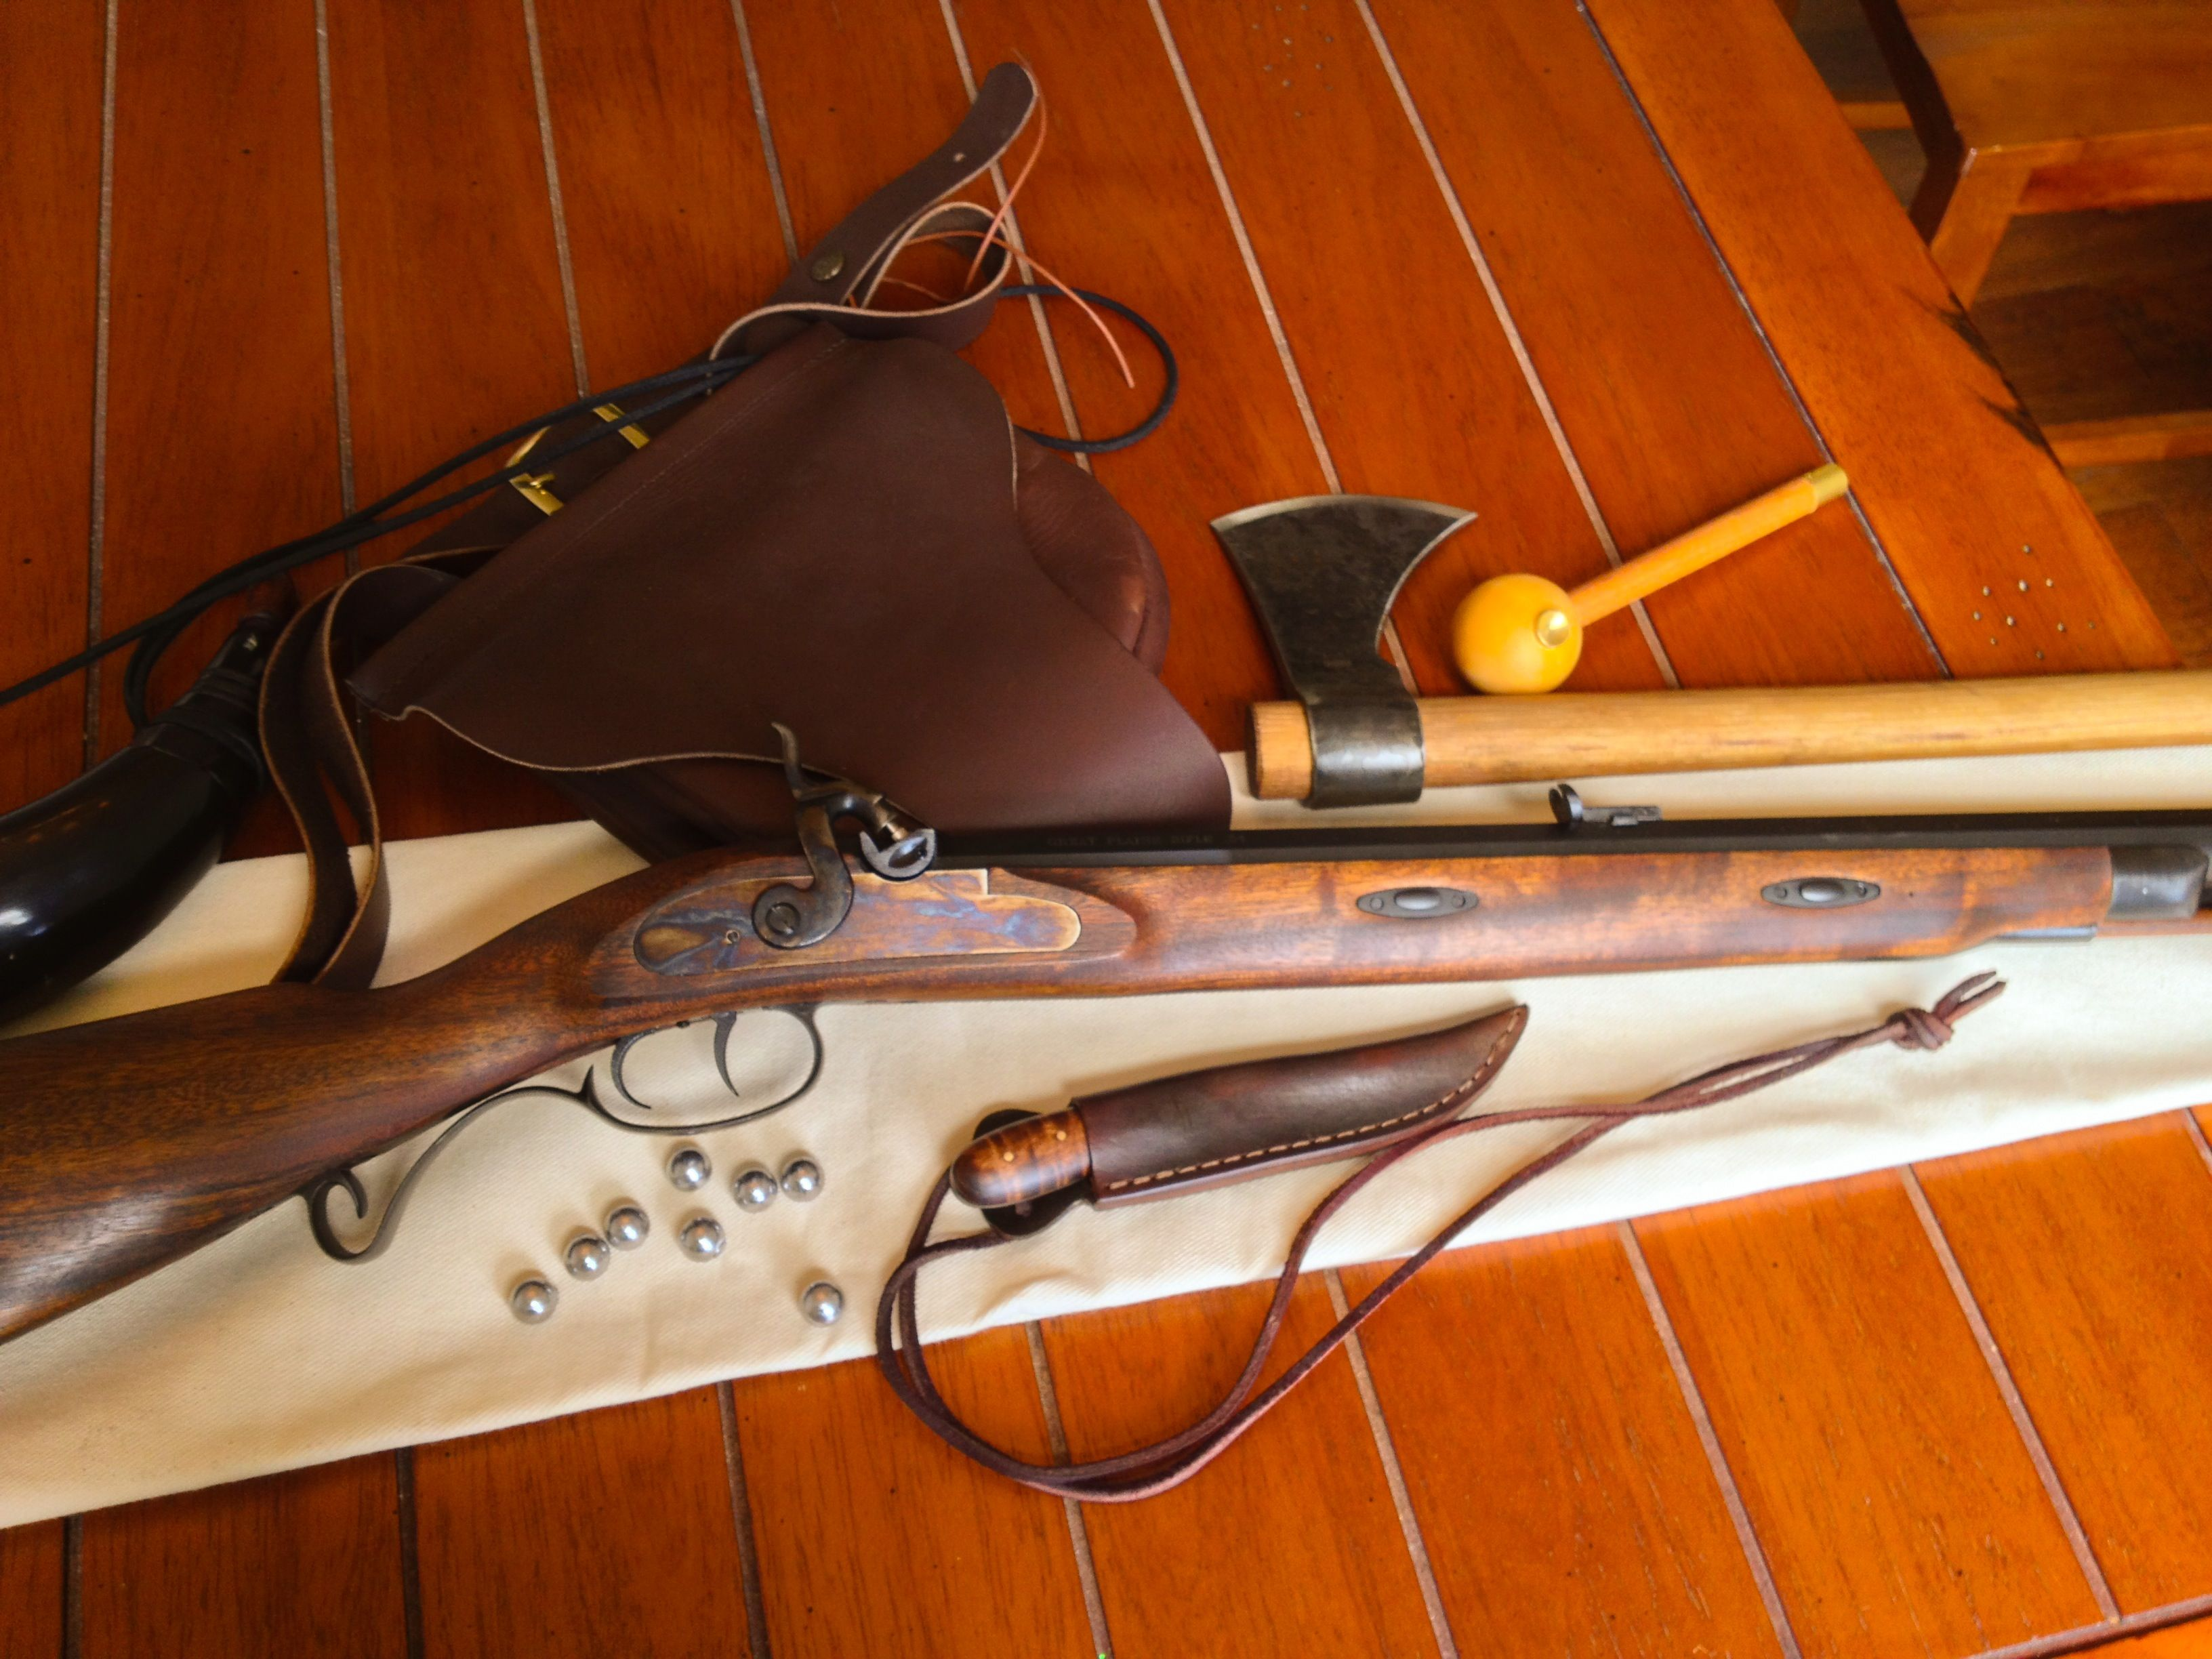 My Lyman Great Plains Rifle and kit | Black powder, muzzle-loading